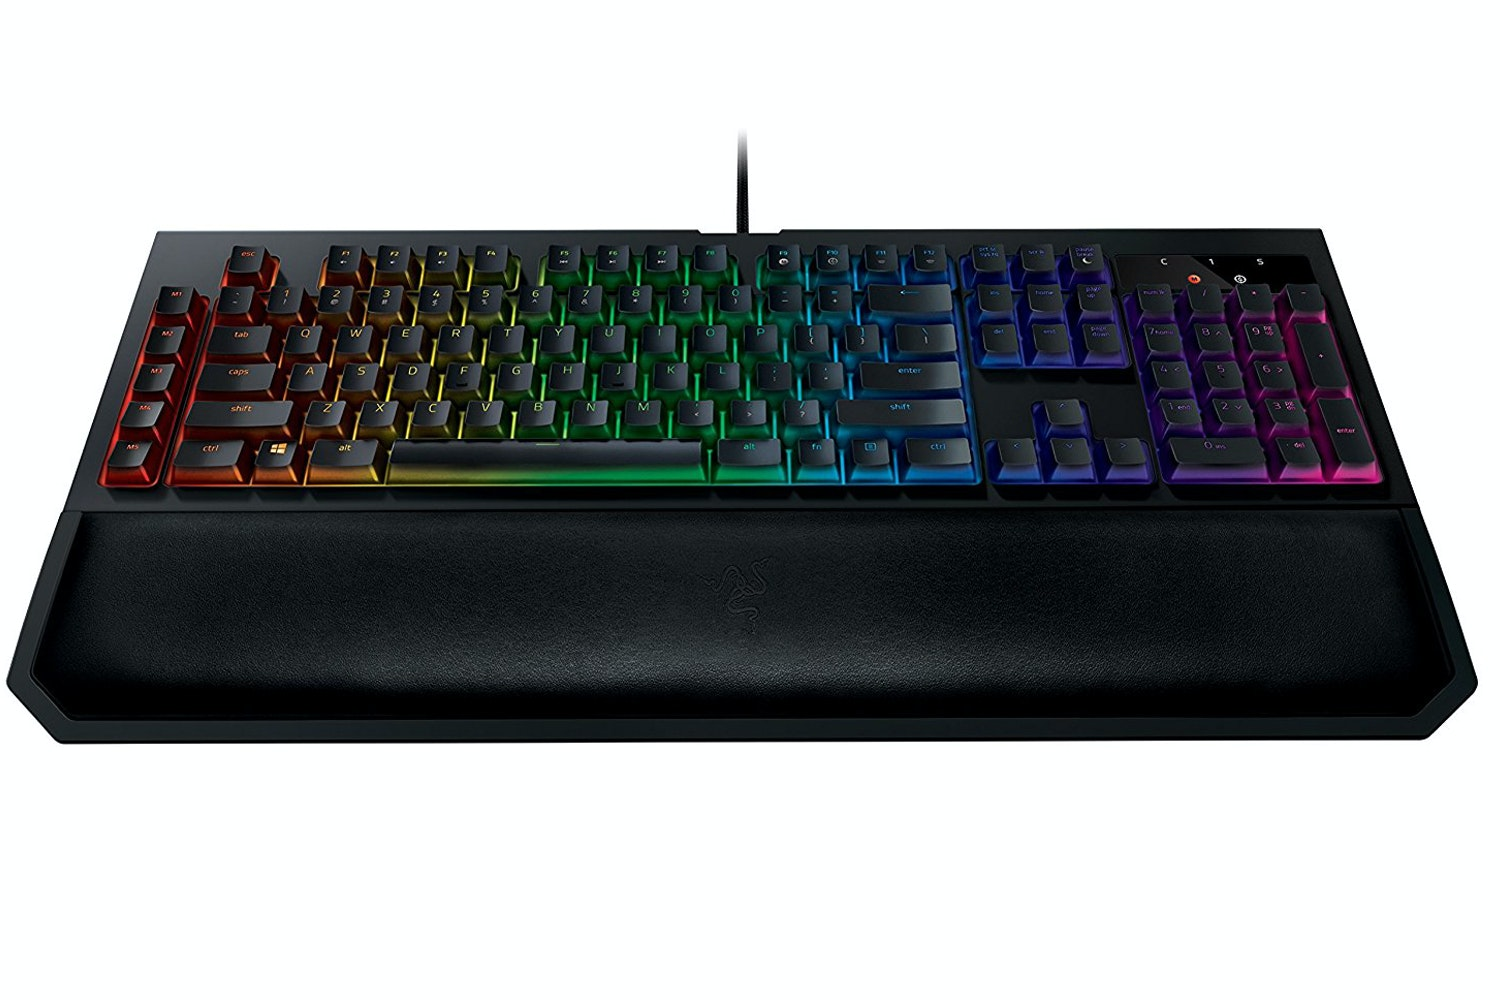 Razer BlackWidow Chroma V2 Mechanical Keyboard